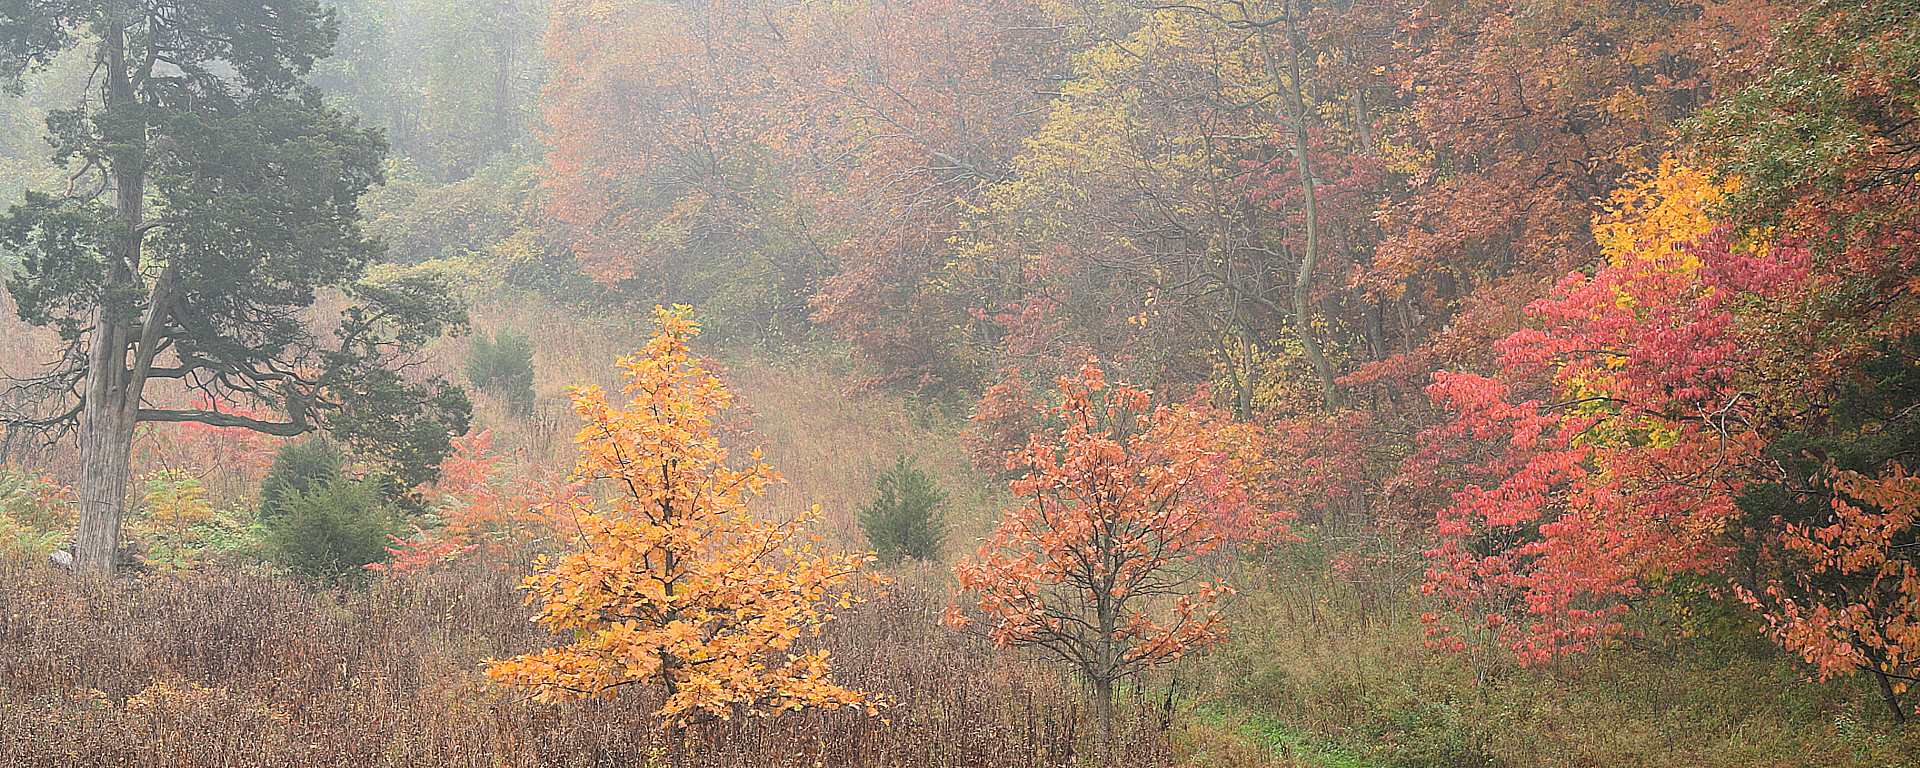 Avalon Preserve in Autumn Fog, 2005